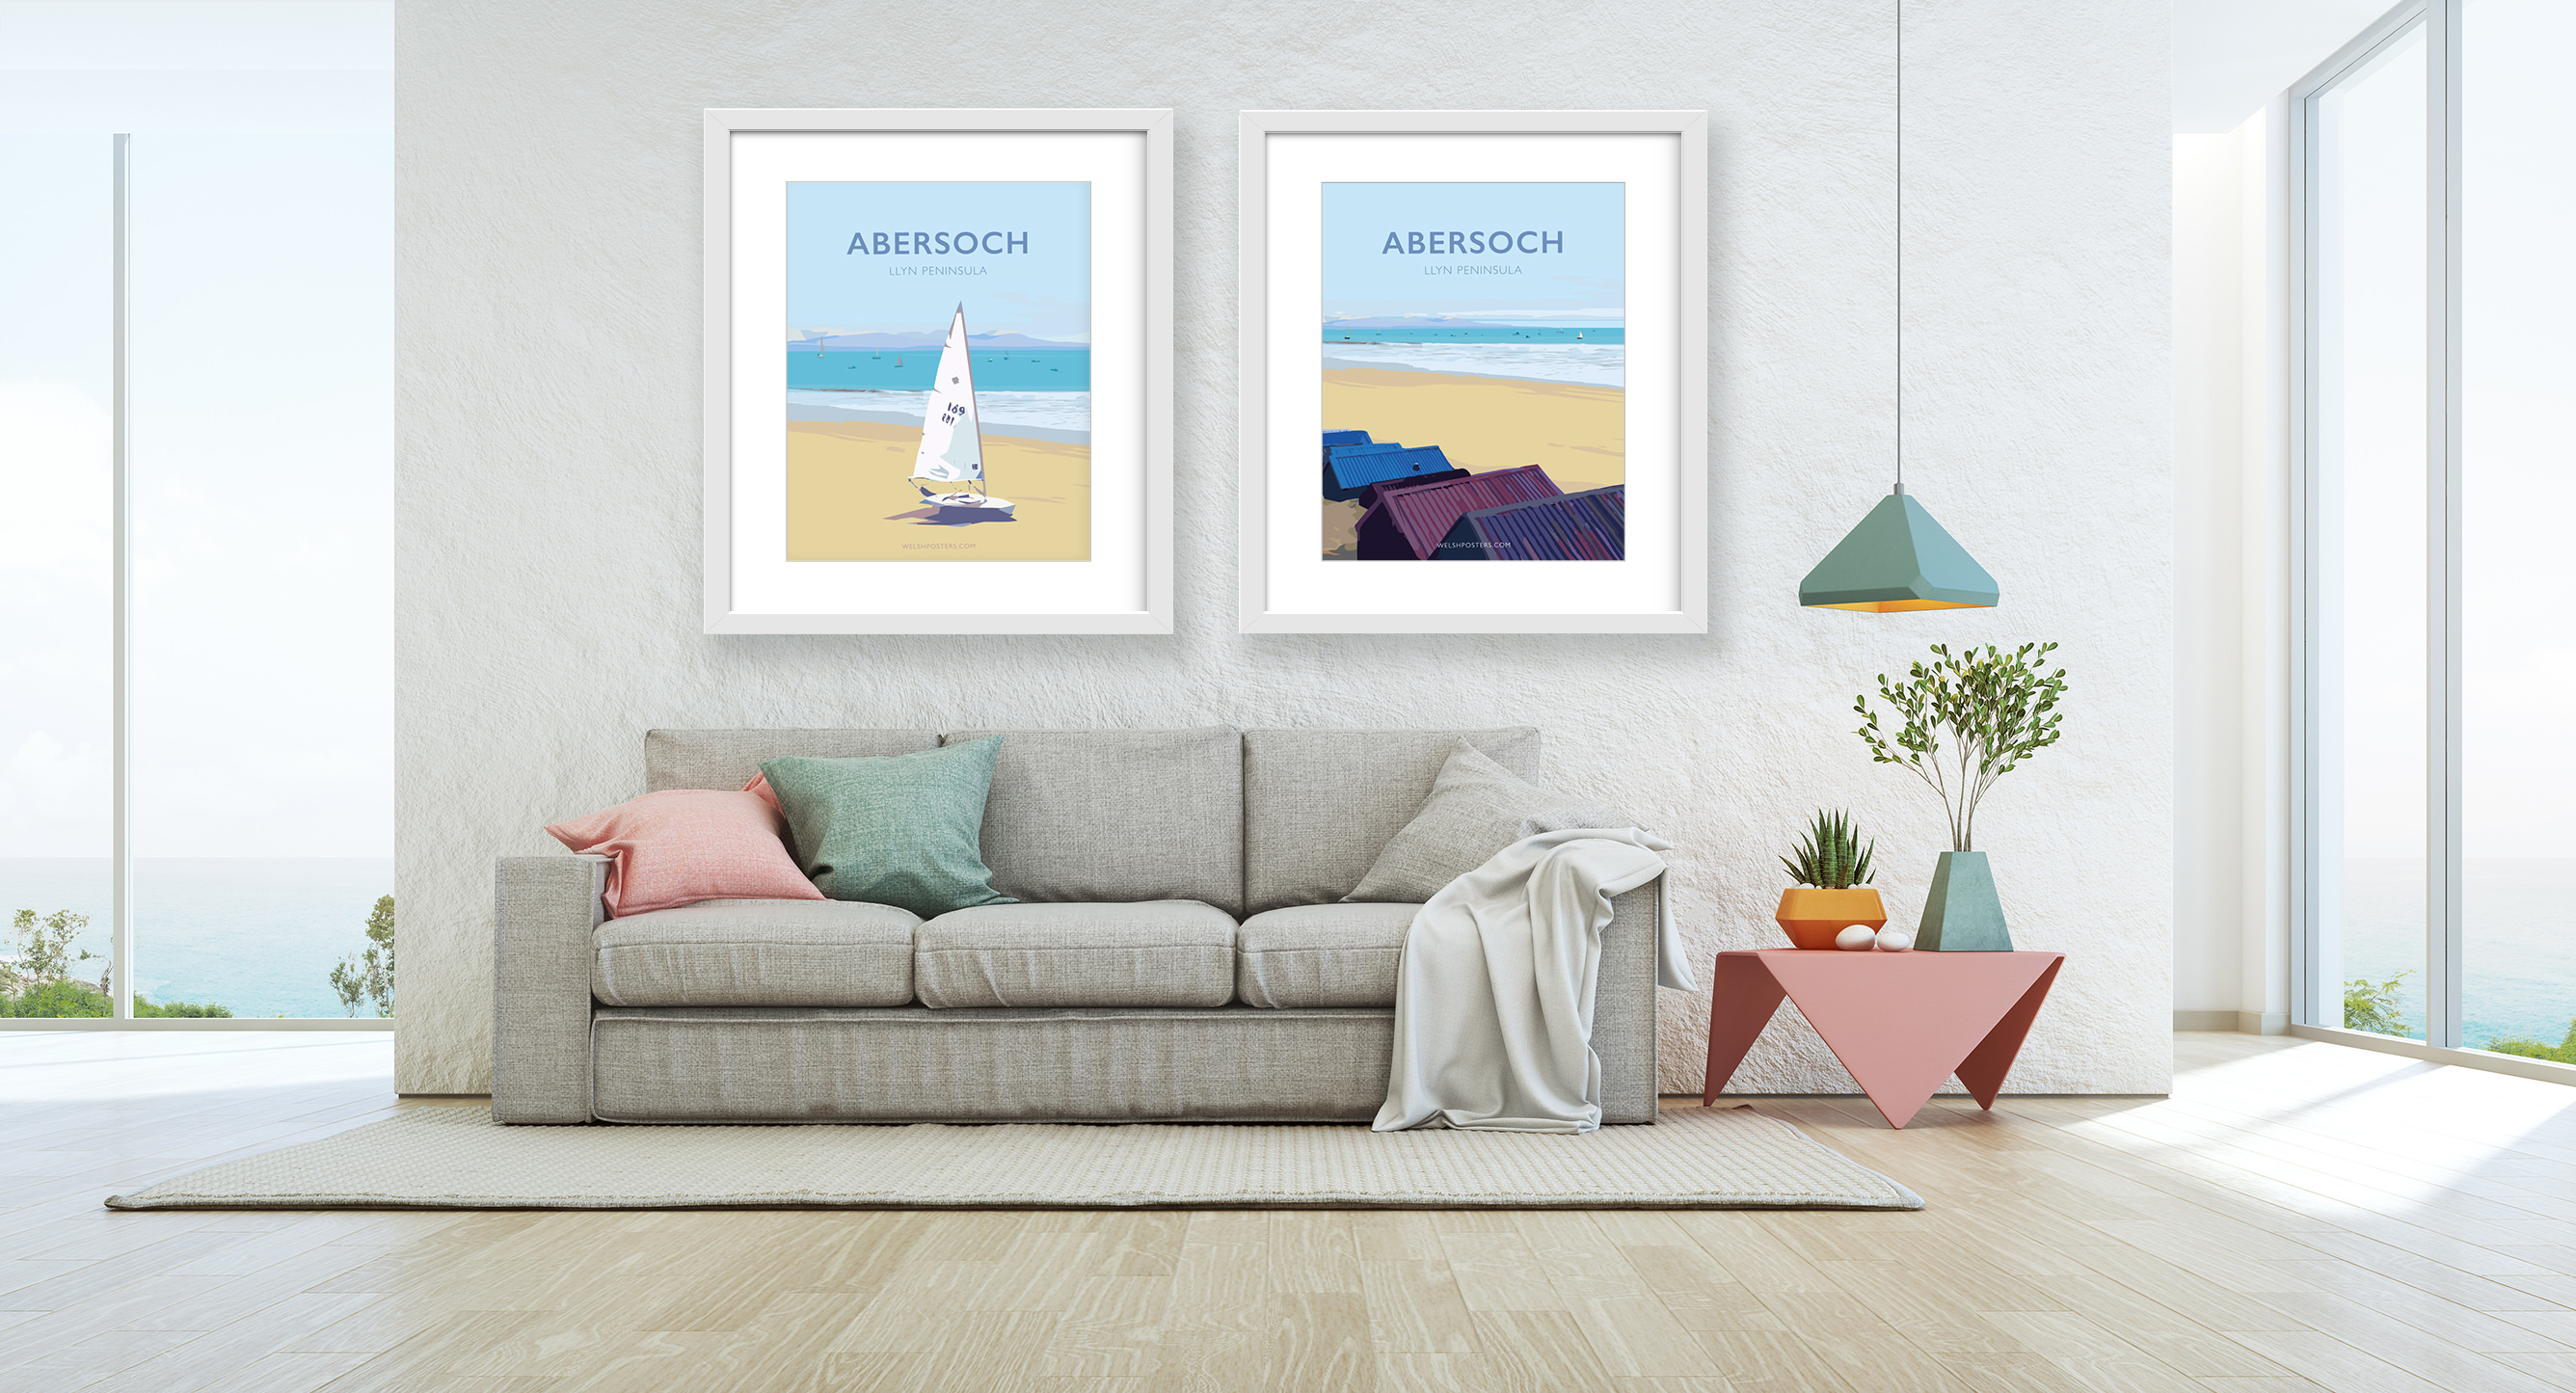 Abersoch posters